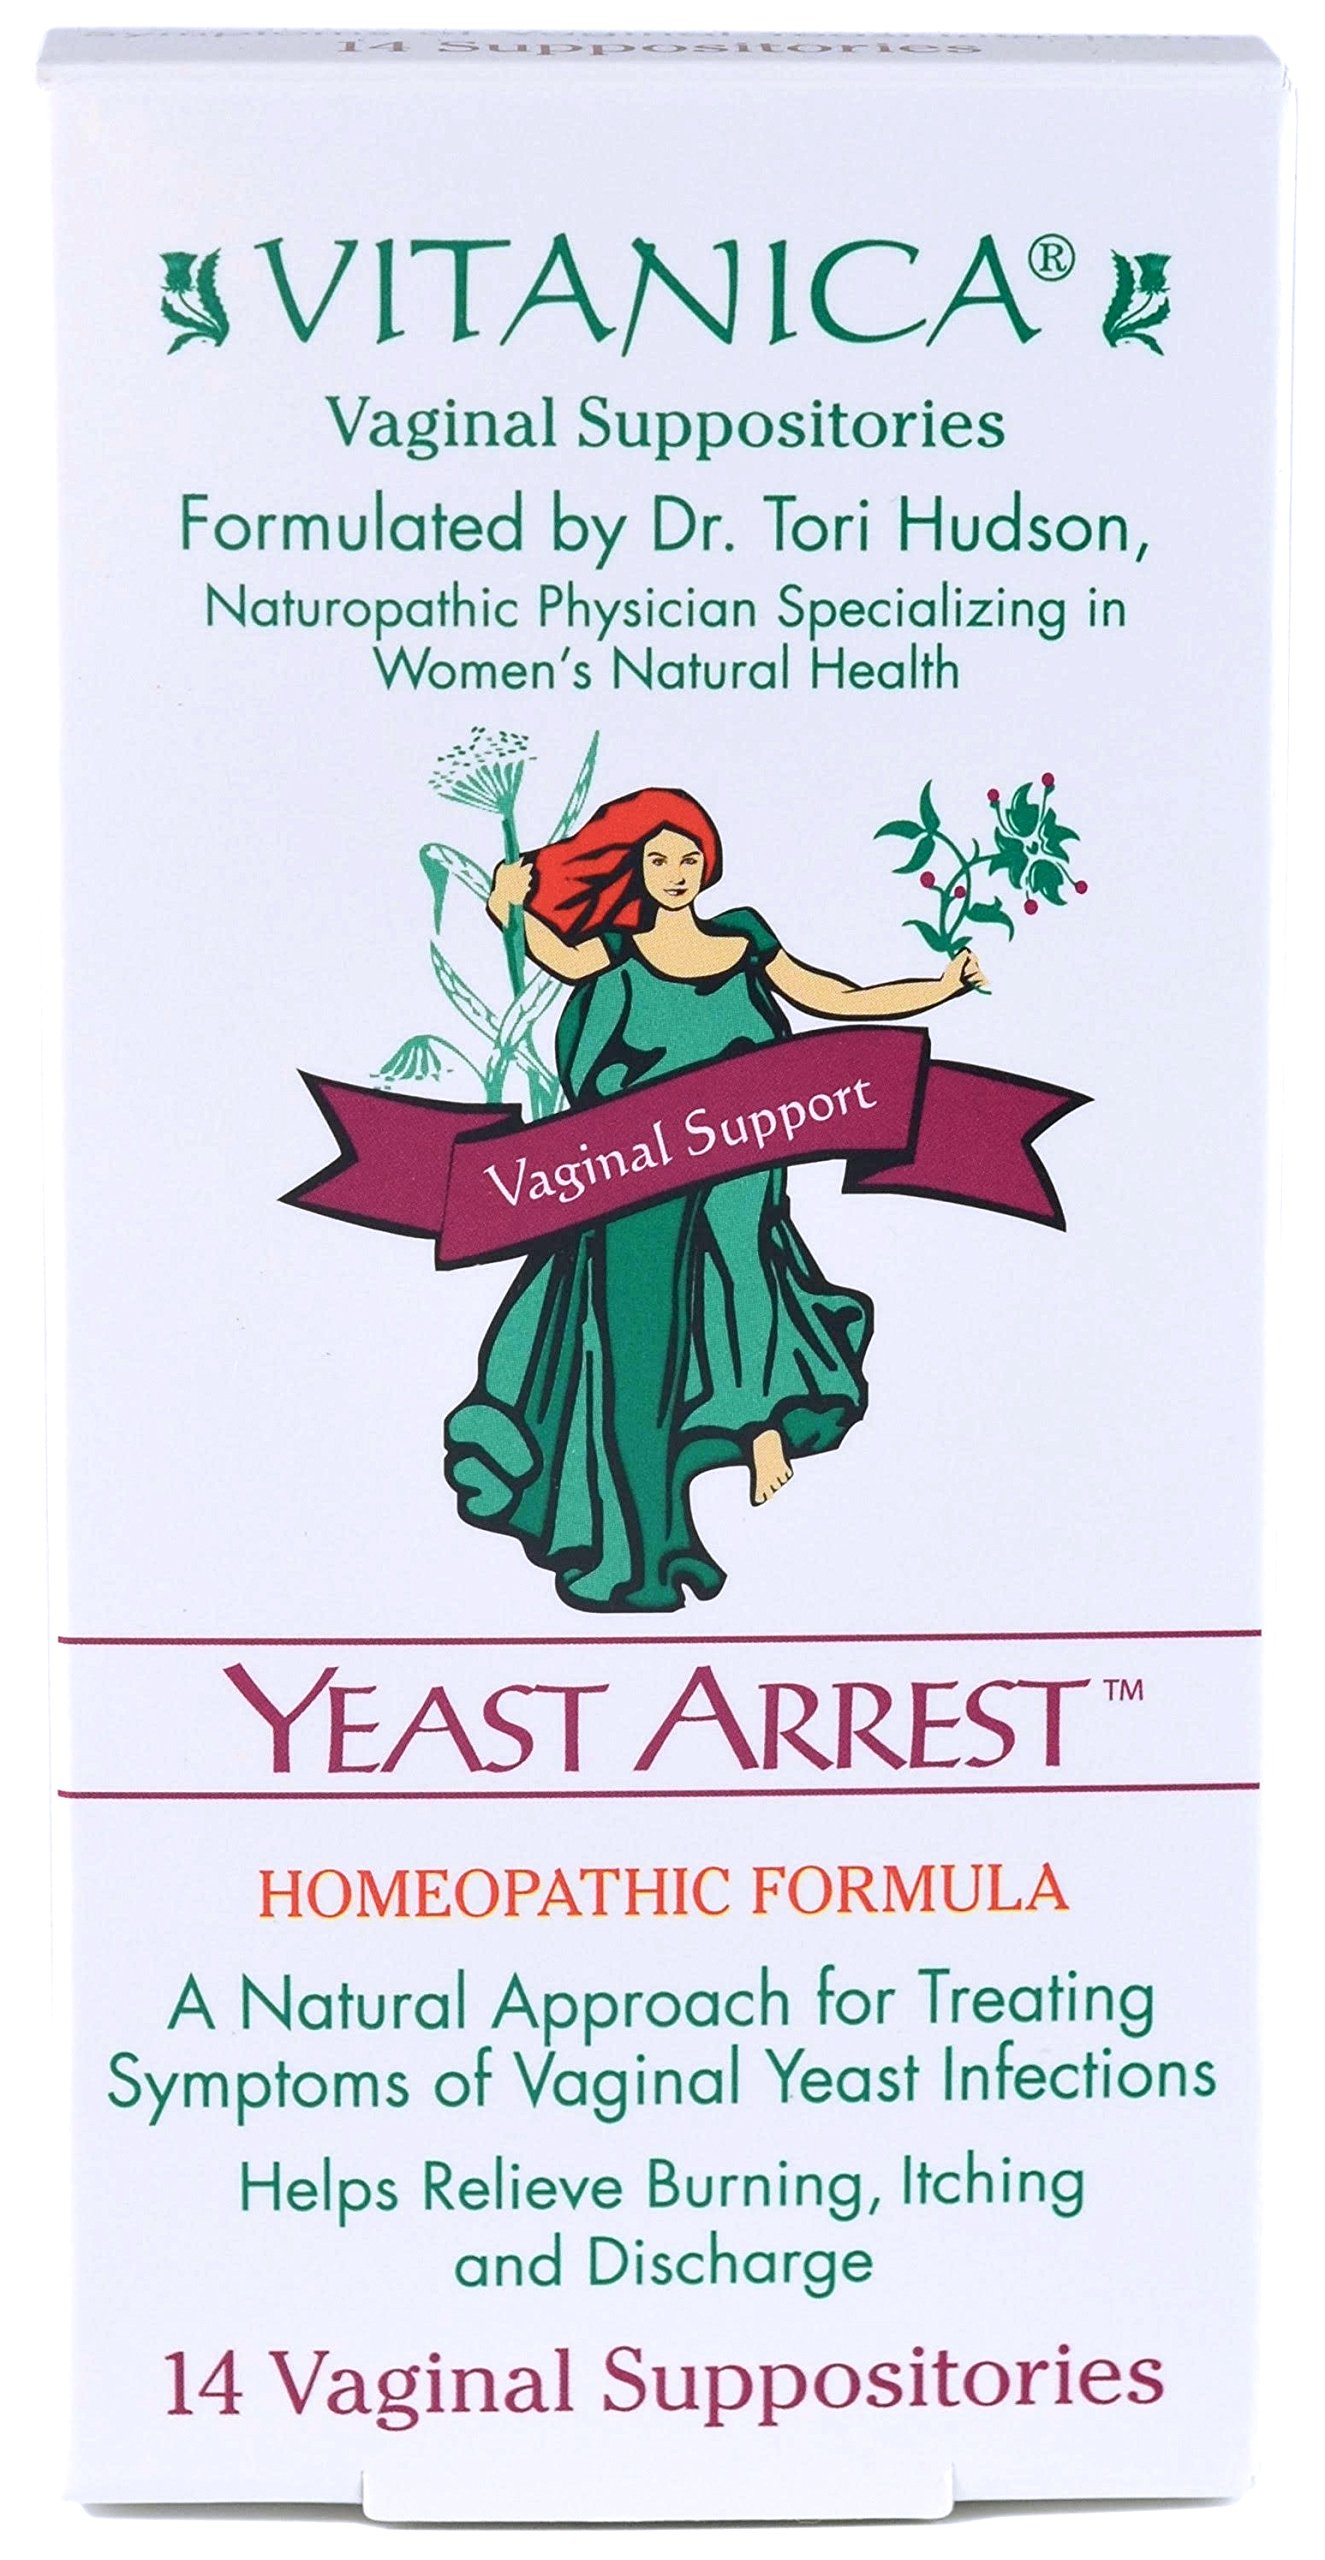 Vitanica - Yeast Arrest - Homeopathic Vaginal Suppositories - 14 Count by Vitanica